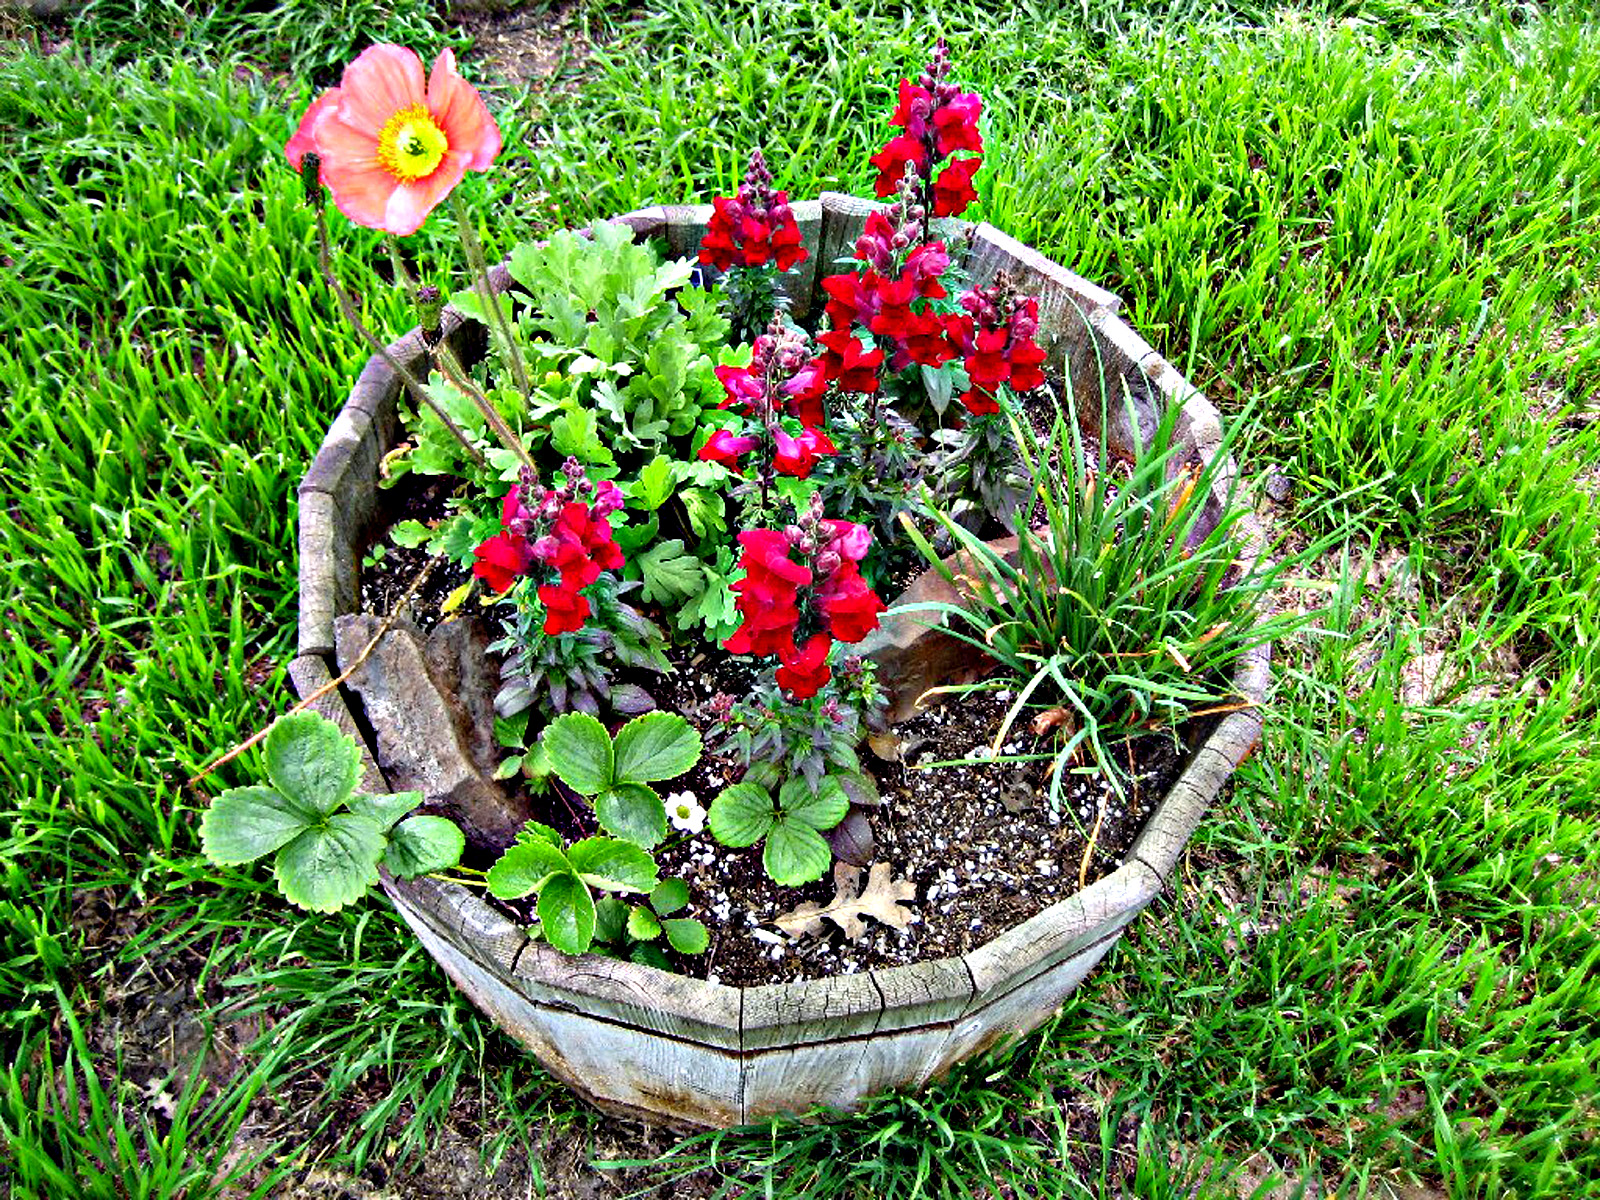 Pot of Flowers, Barrell, Bspo06, Flowers, Green, HQ Photo